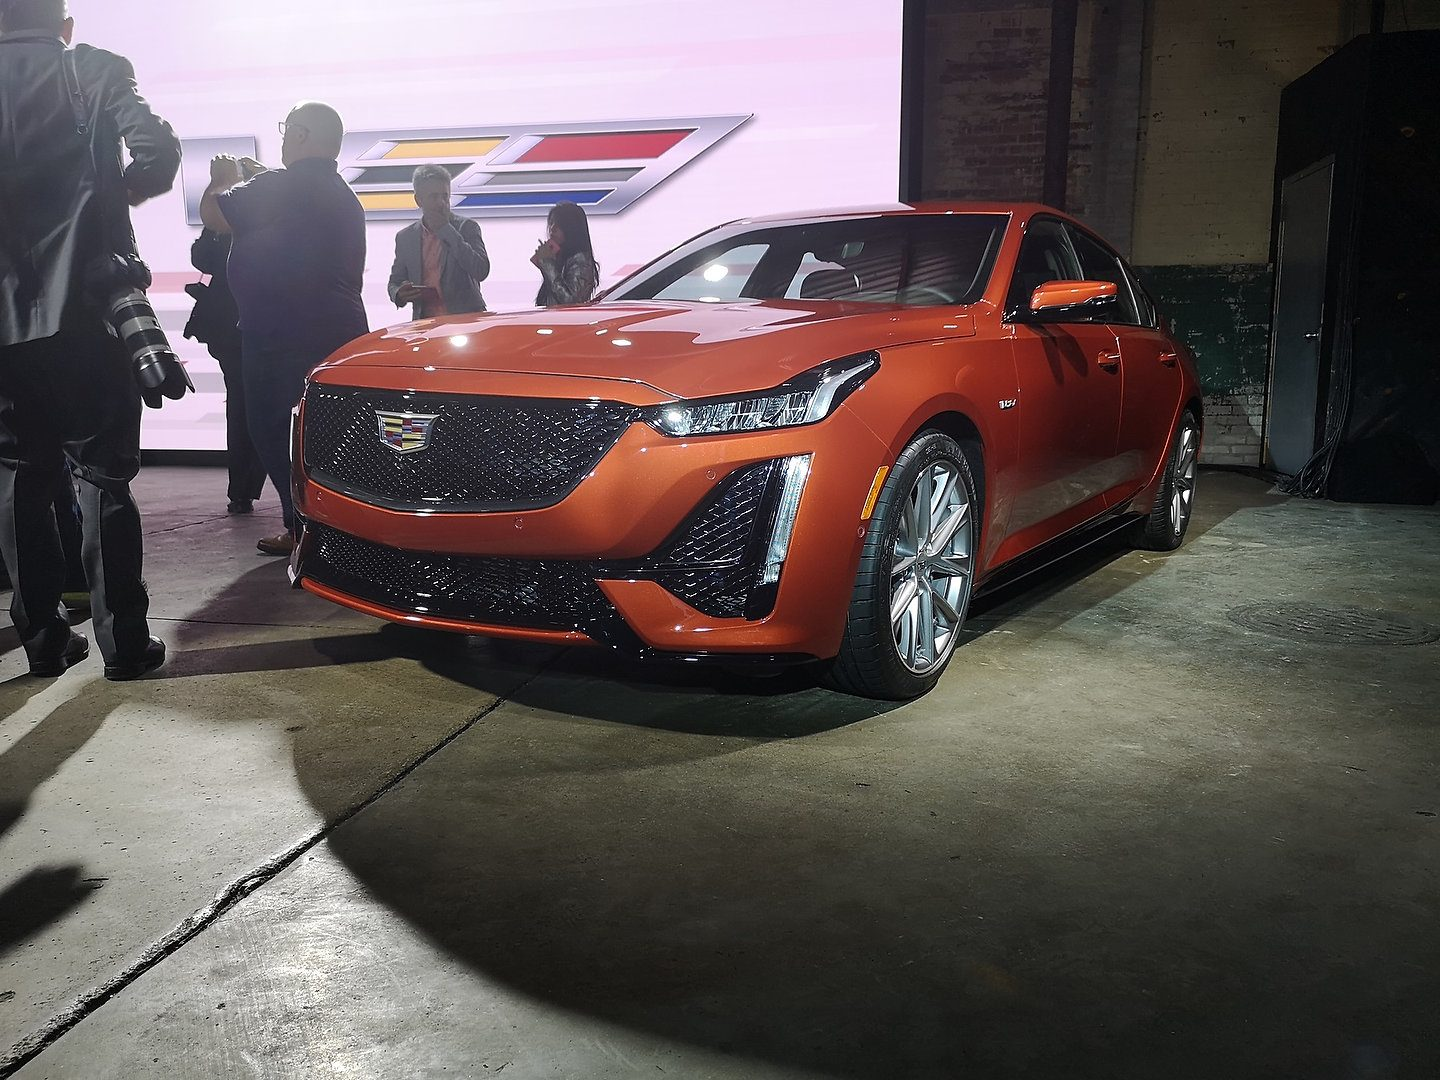 2020 CT5-V and 2020 CT4-V launch event